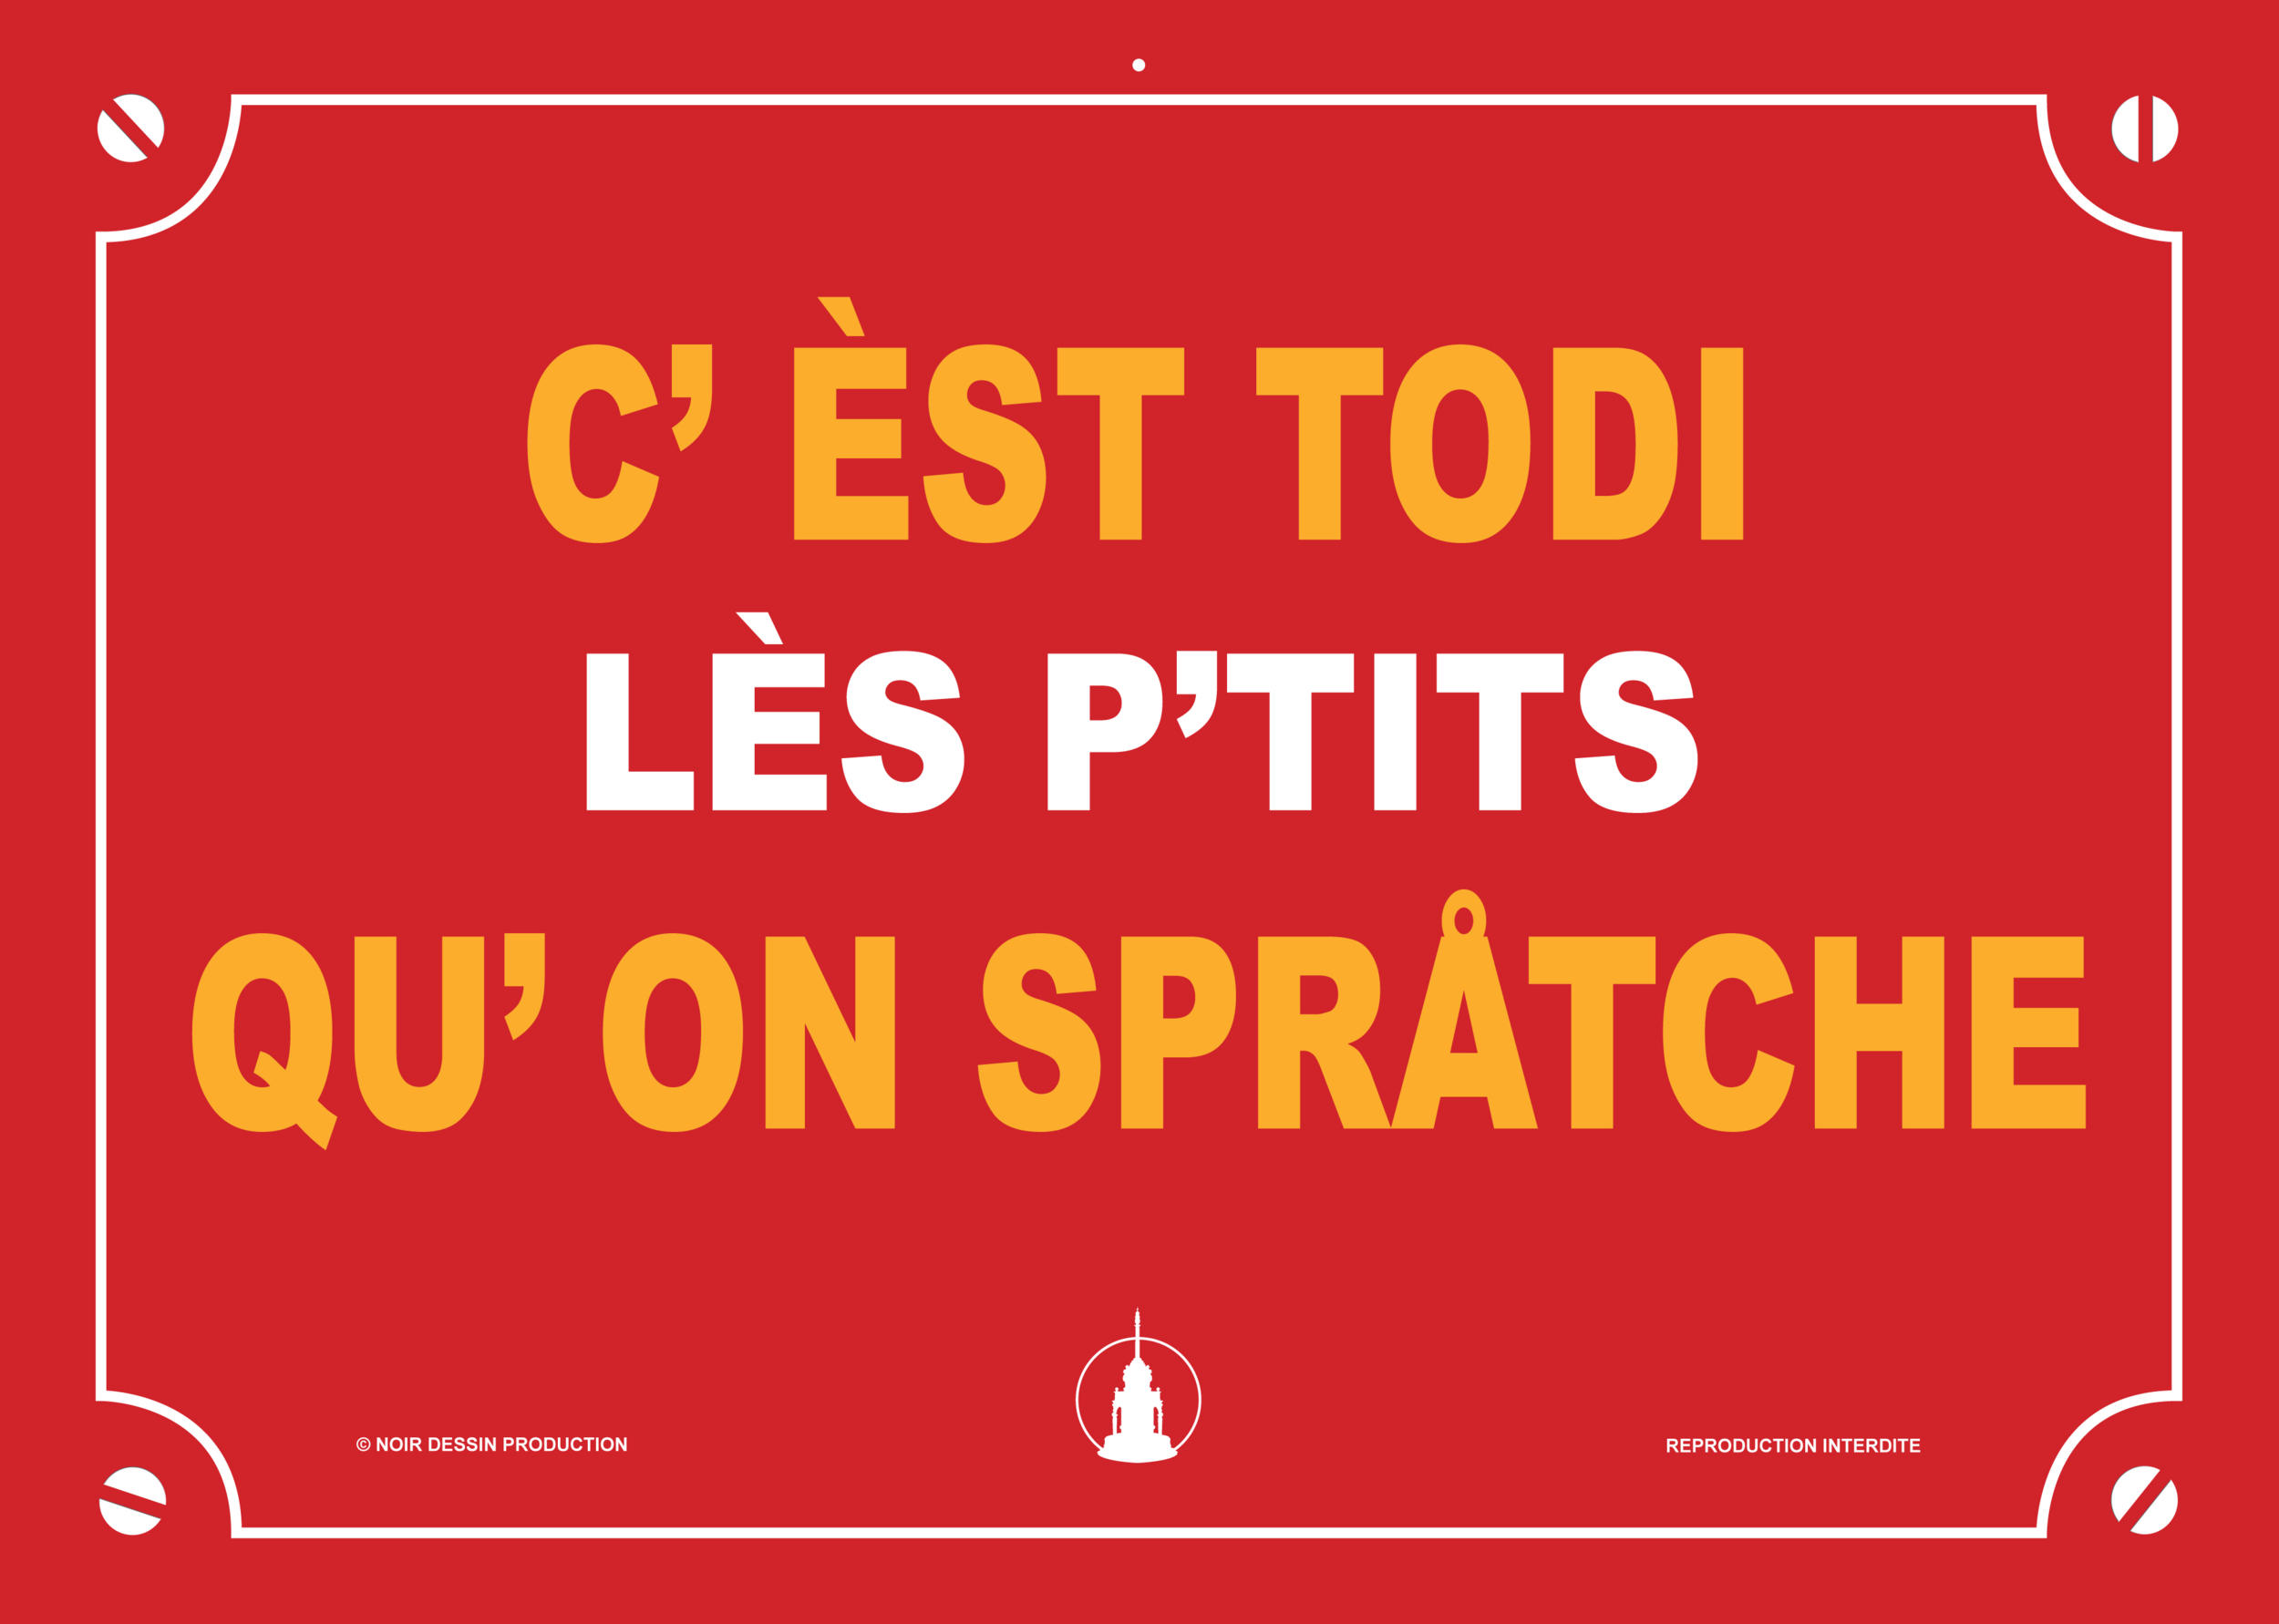 tody les p'tits-ROUGE-2